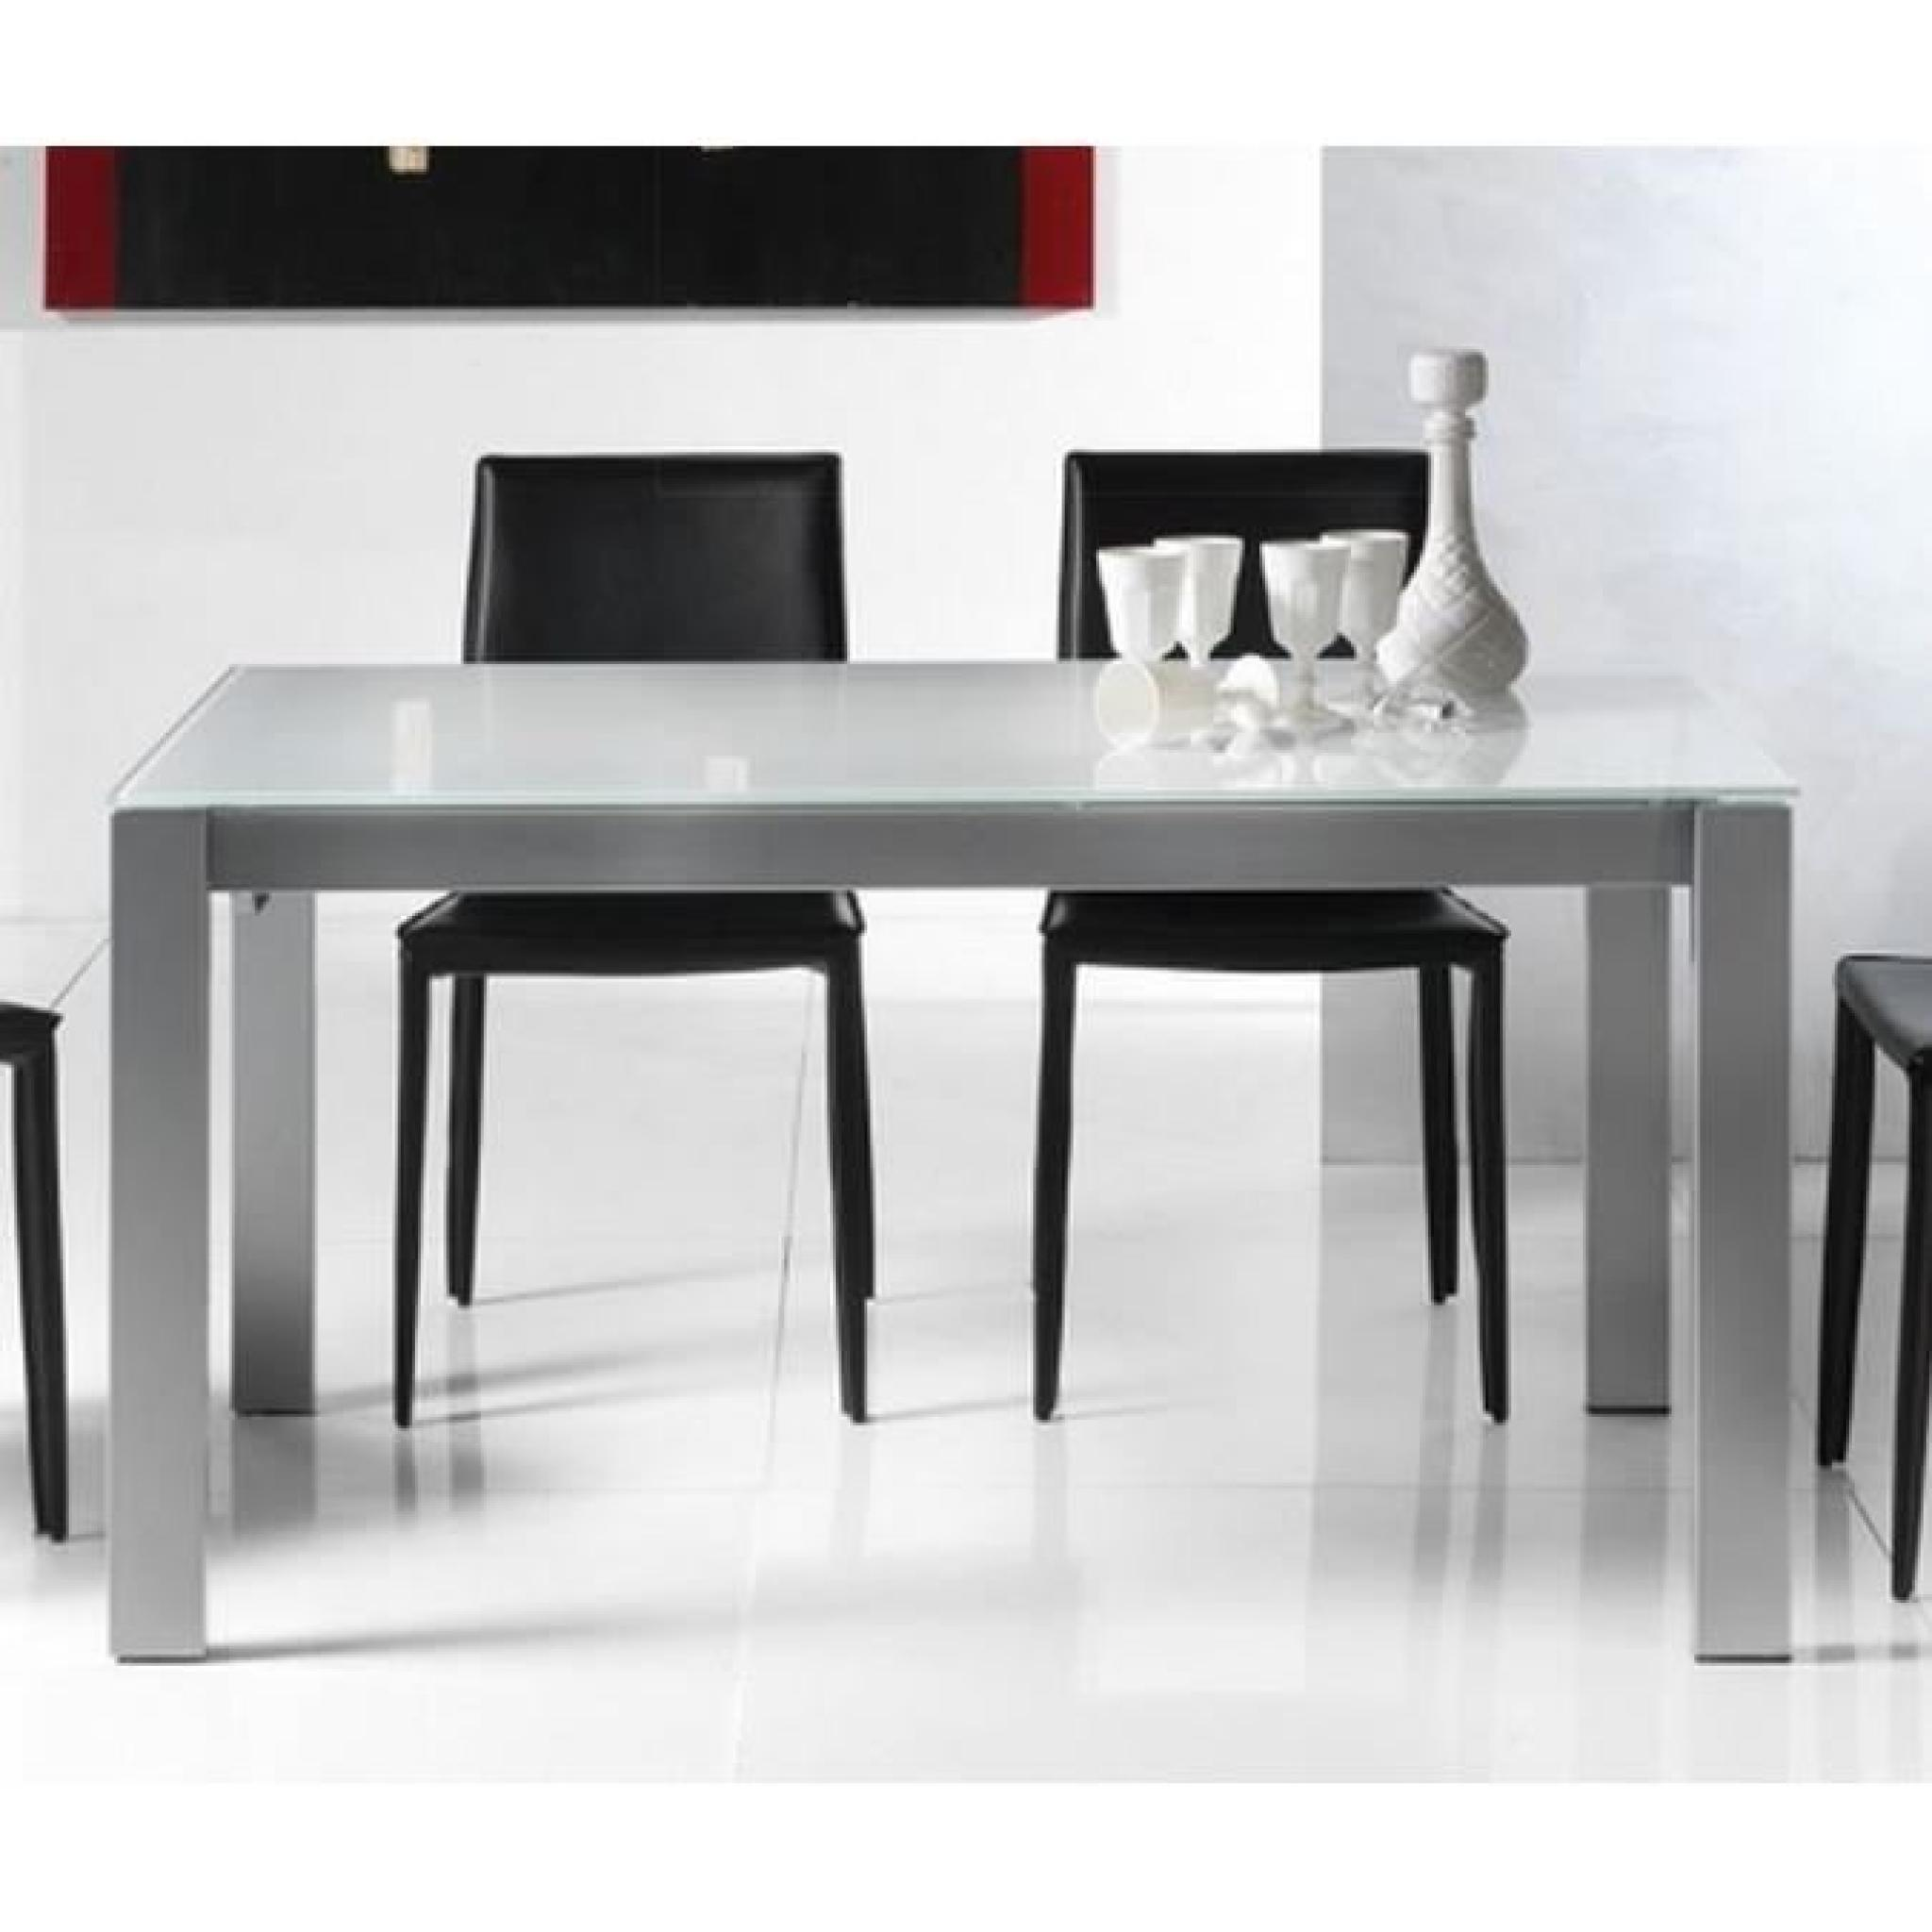 table repas extensible twelve 140 x 85 cm verre achat vente table salle a manger pas cher. Black Bedroom Furniture Sets. Home Design Ideas